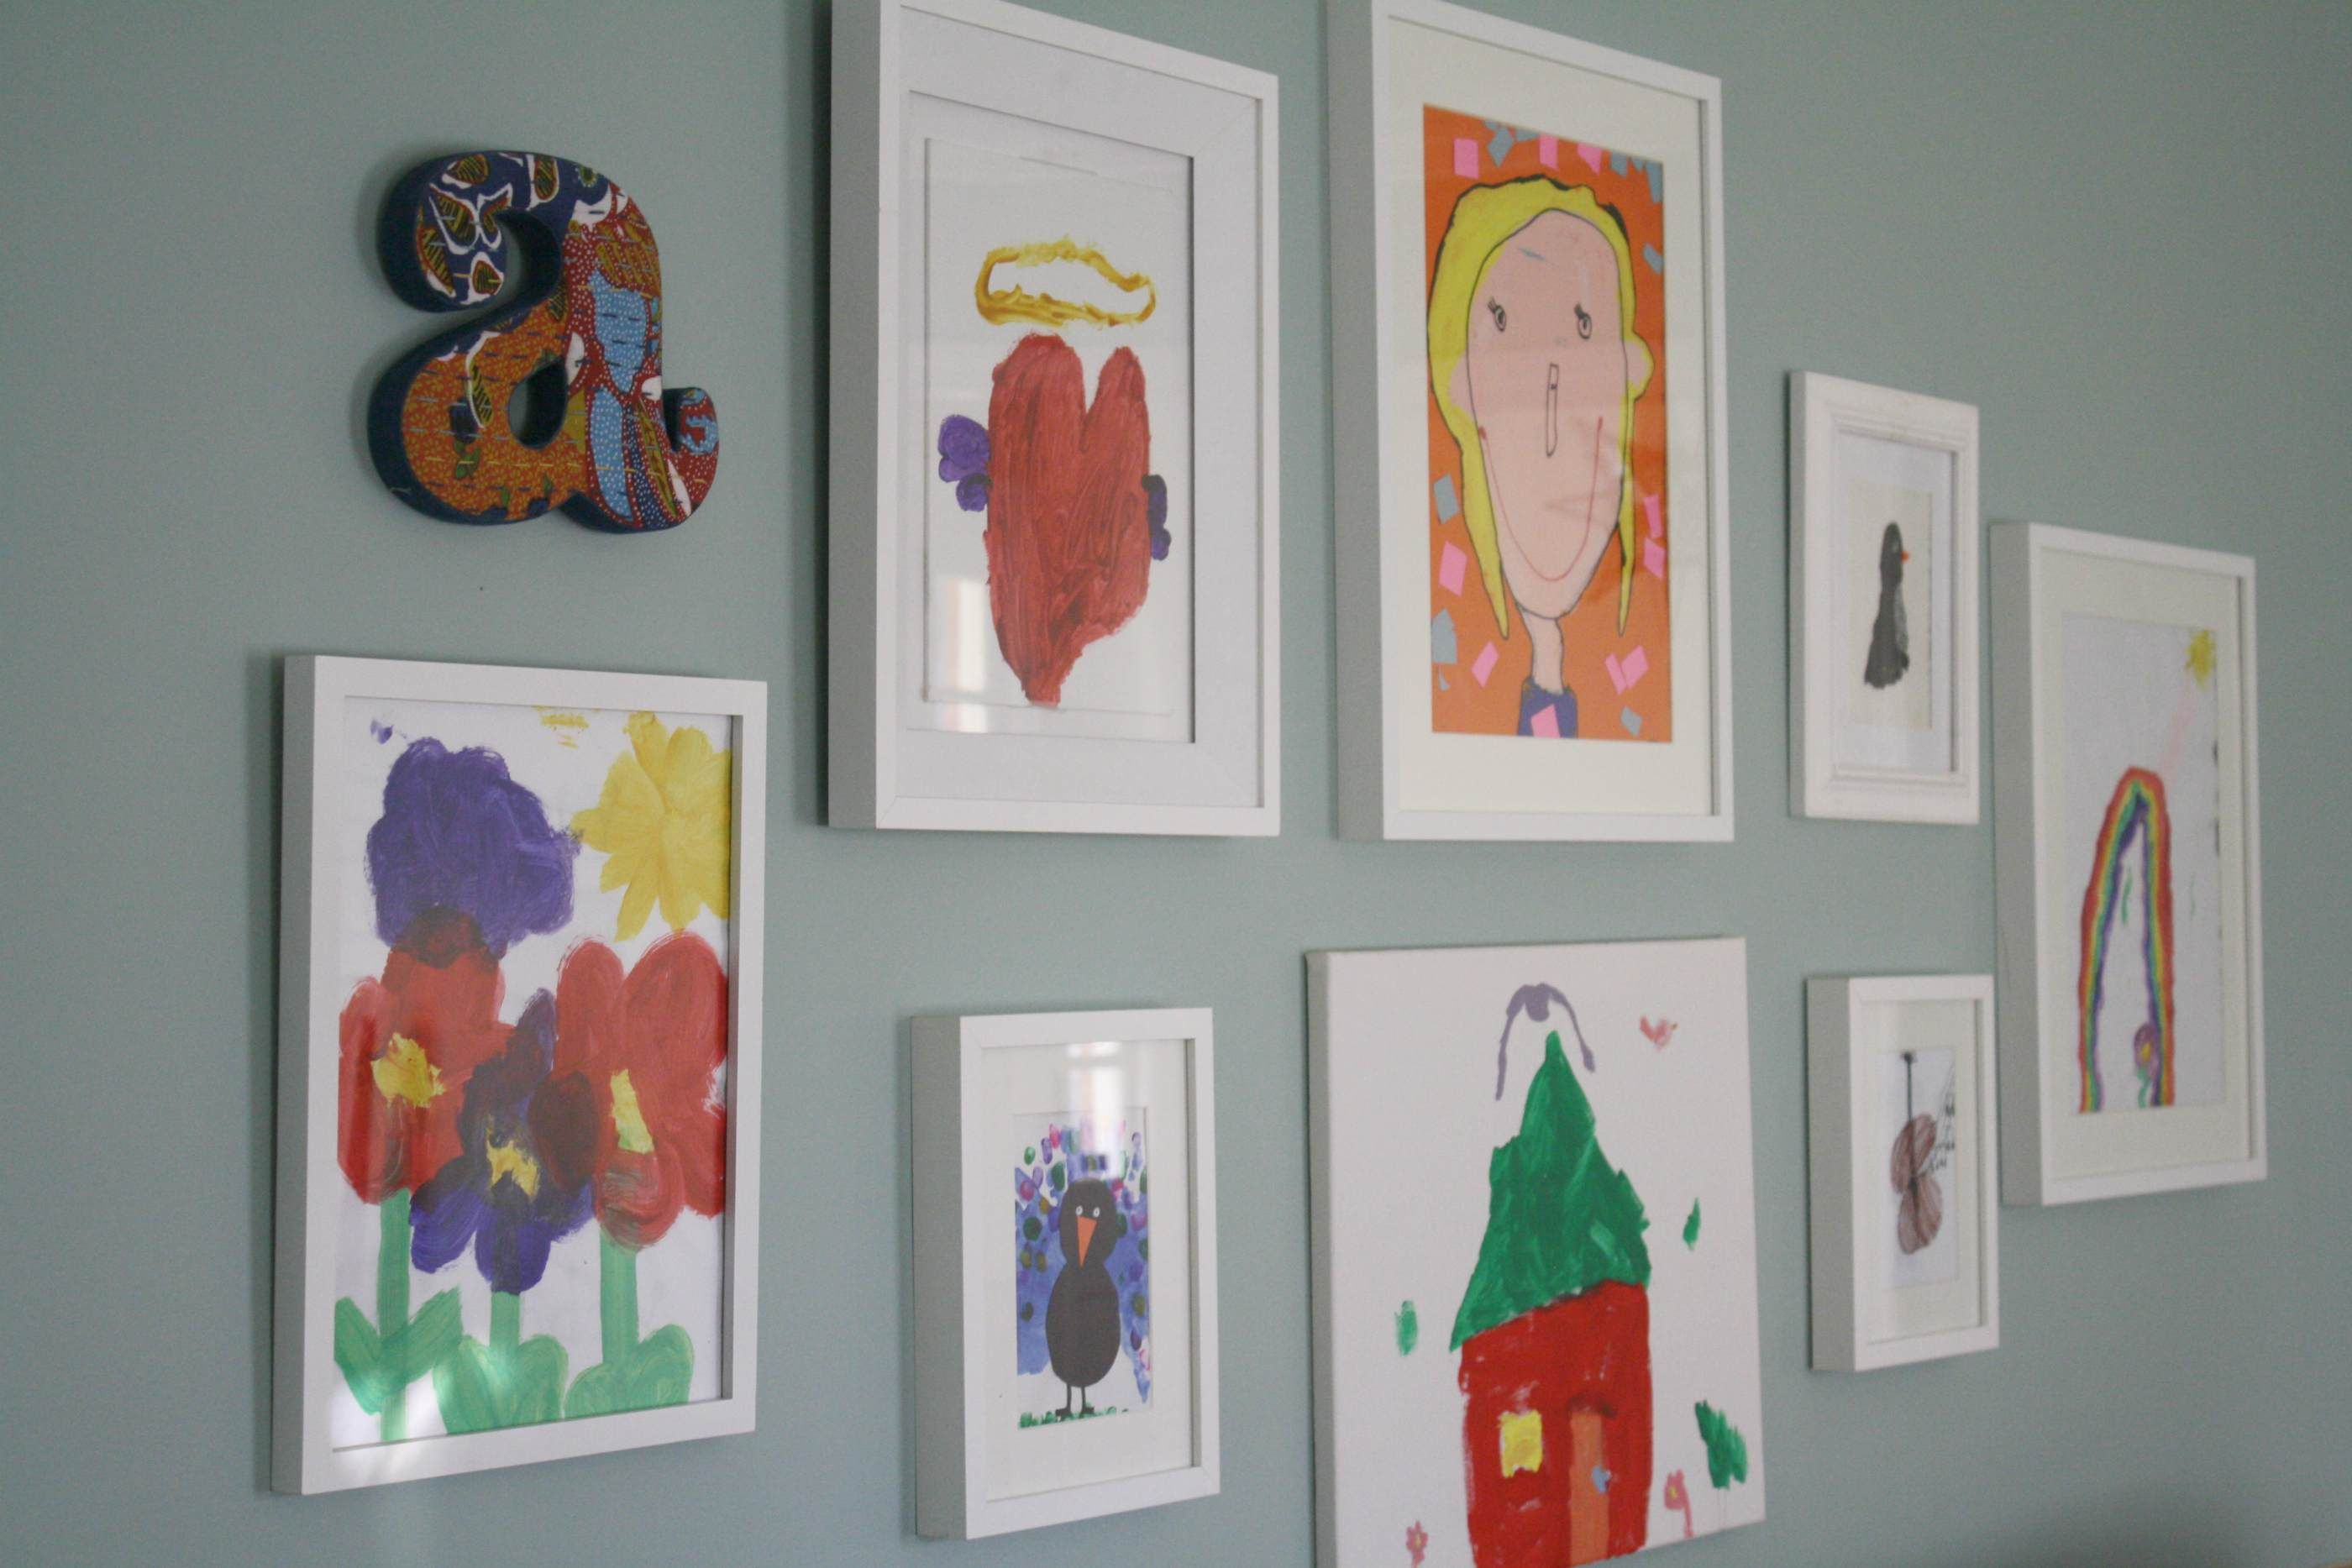 Like The Idea Of Framing The Kids Art In The